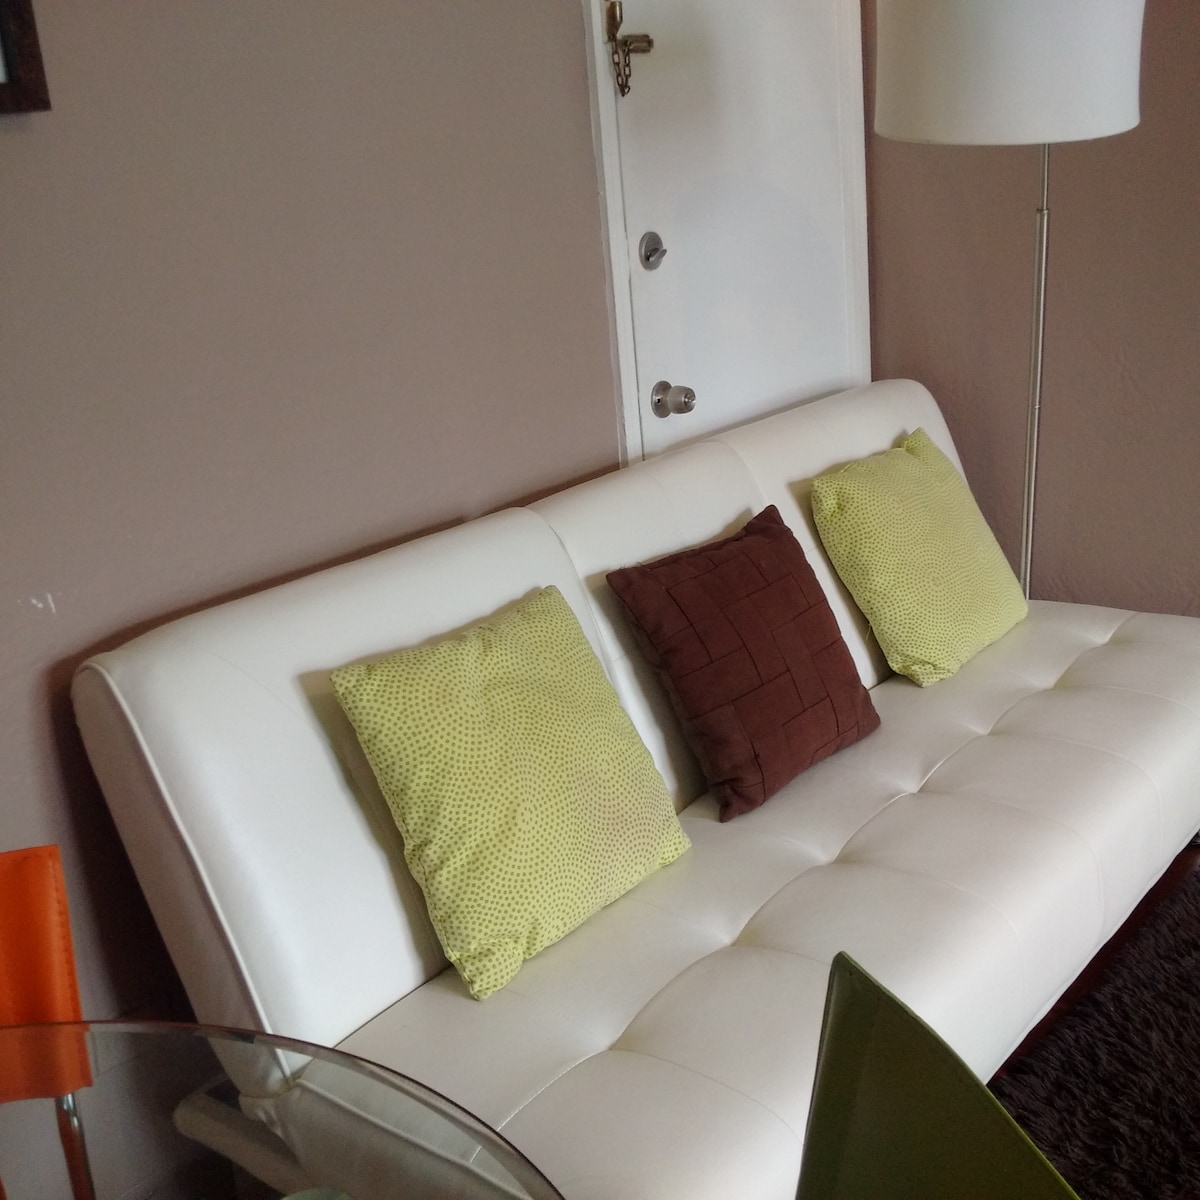 Extra sofa bed so you can bring your friends (or family!)